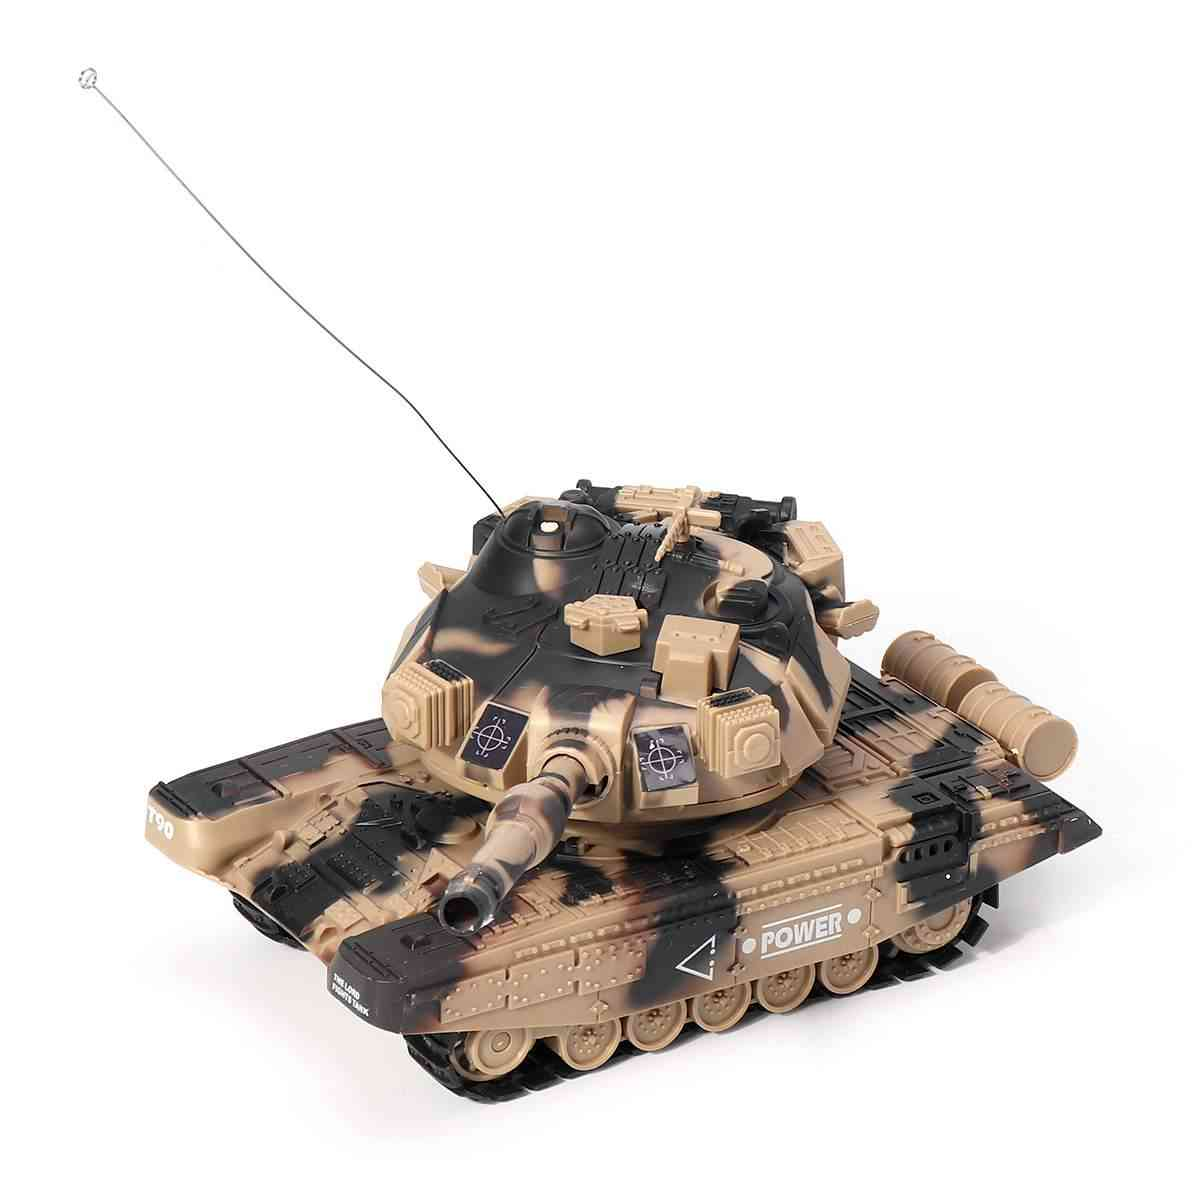 Tactical War Tank, Remote Control With Shoot Bullets